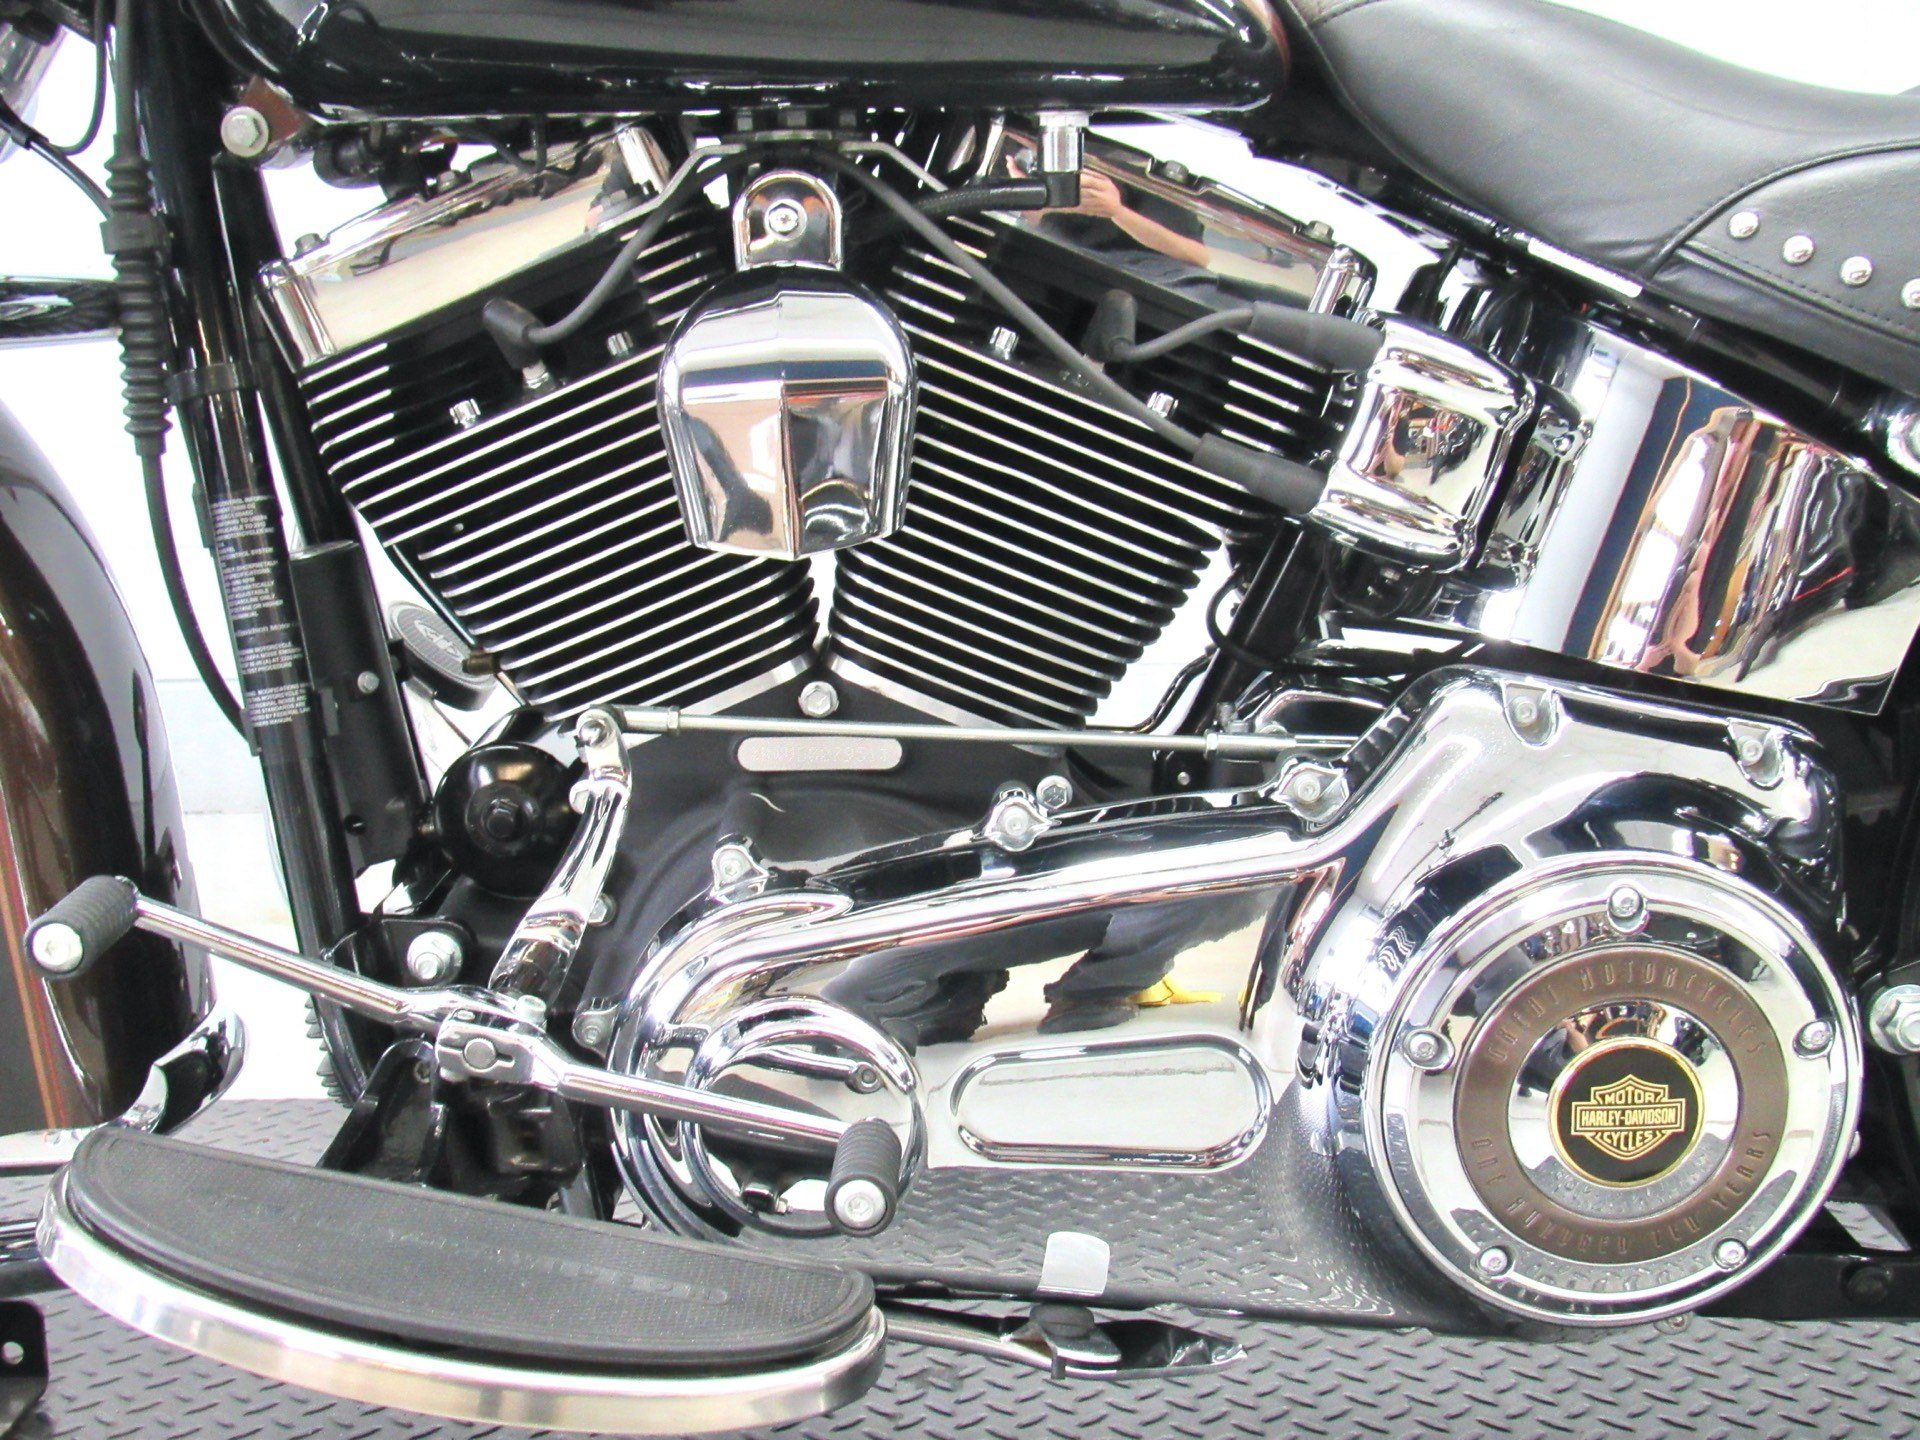 2013 Harley-Davidson Heritage Softail® Classic 110th Anniversary Edition in Fredericksburg, Virginia - Photo 19